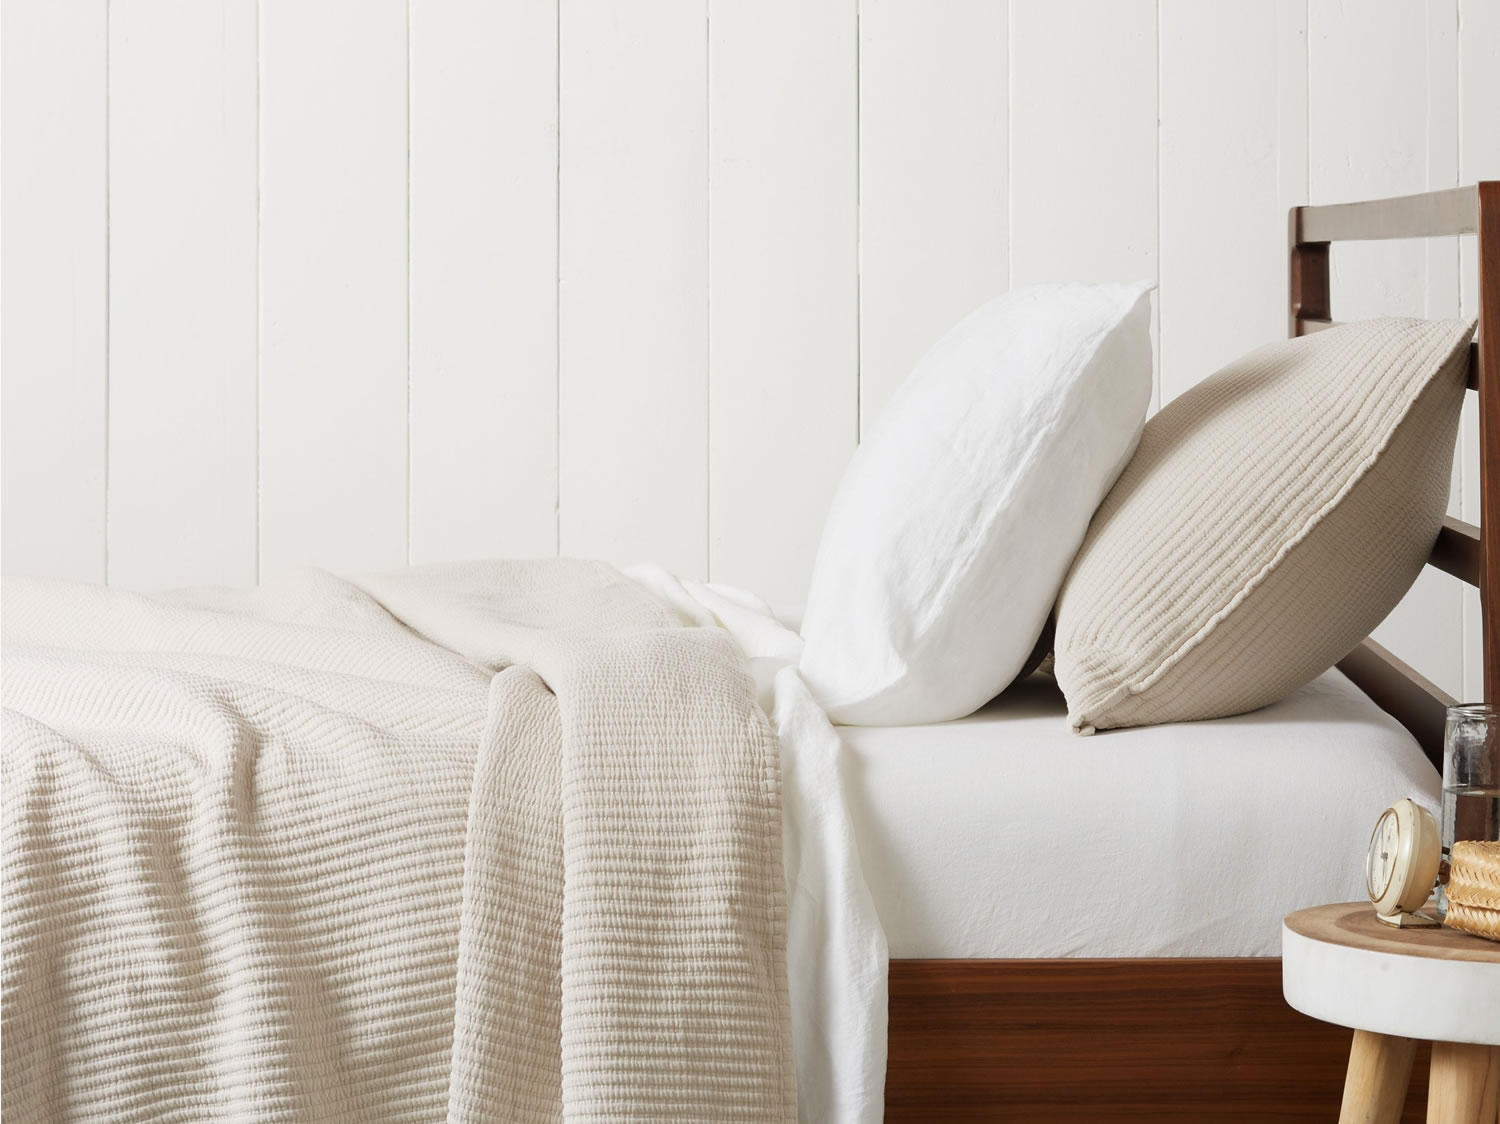 matelassé coverlet  in Dune color mixed with white percale